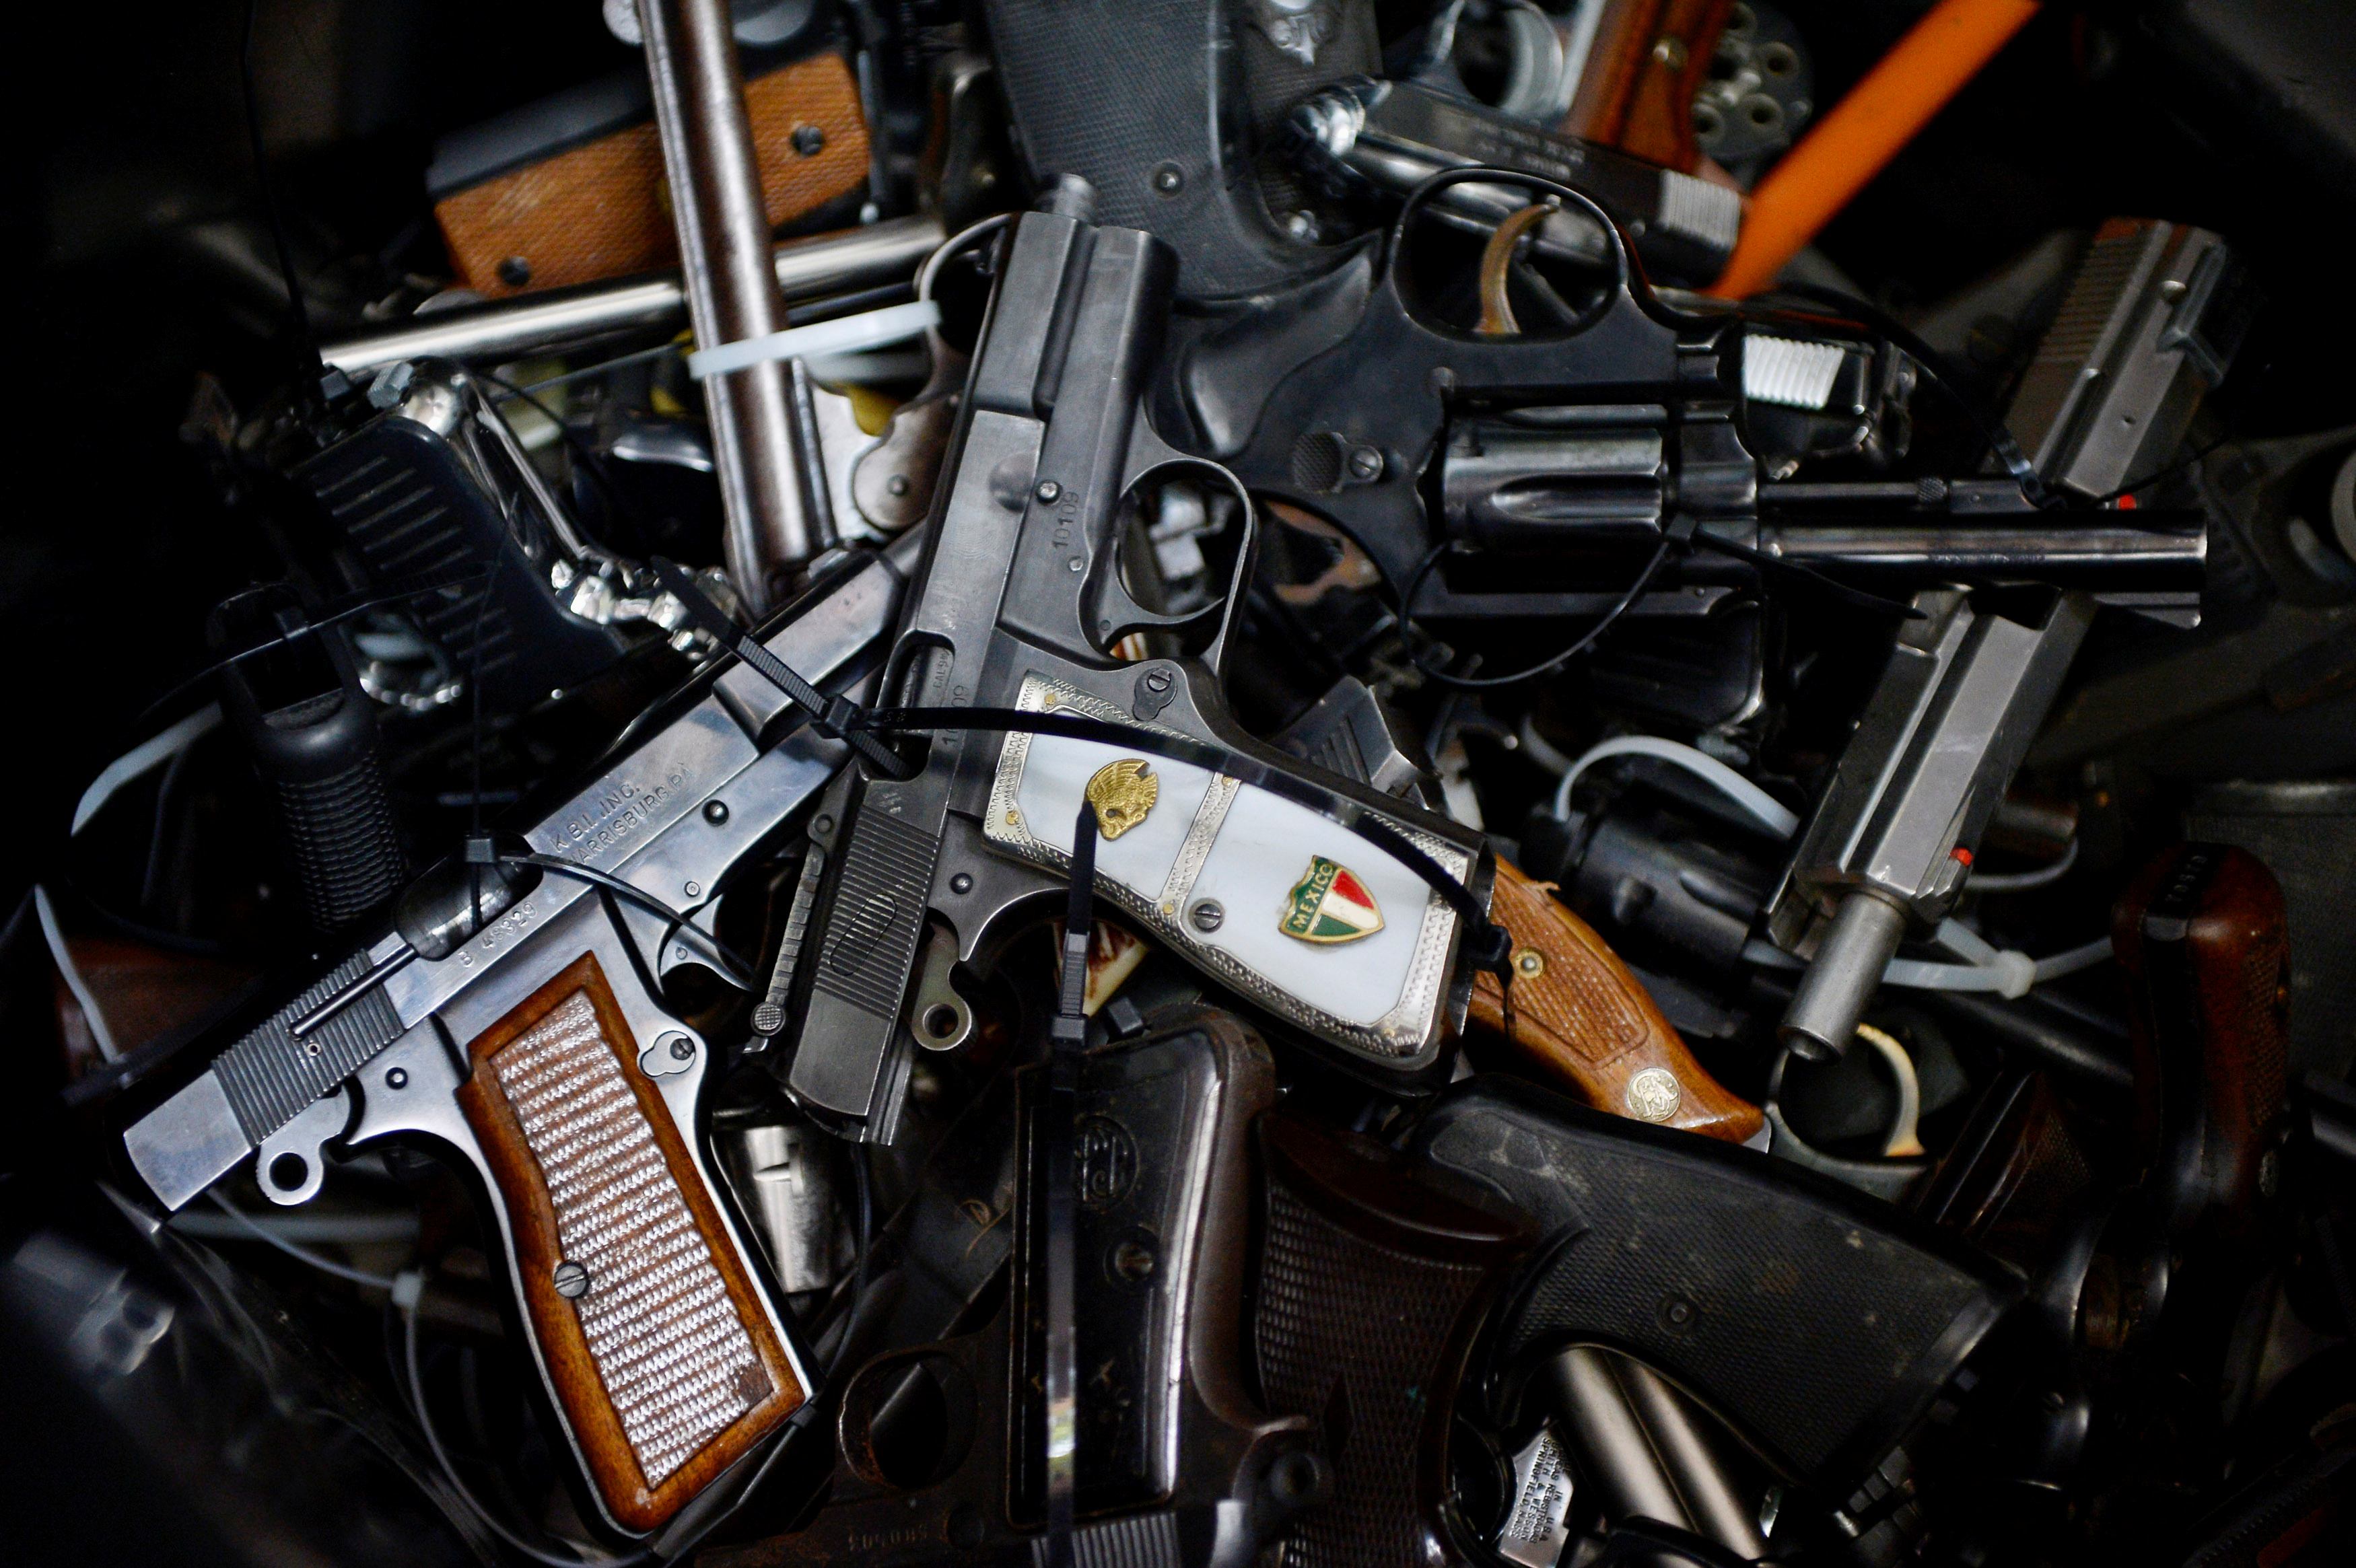 Surrendered handguns are seen during a gun buyback event in Los Angeles